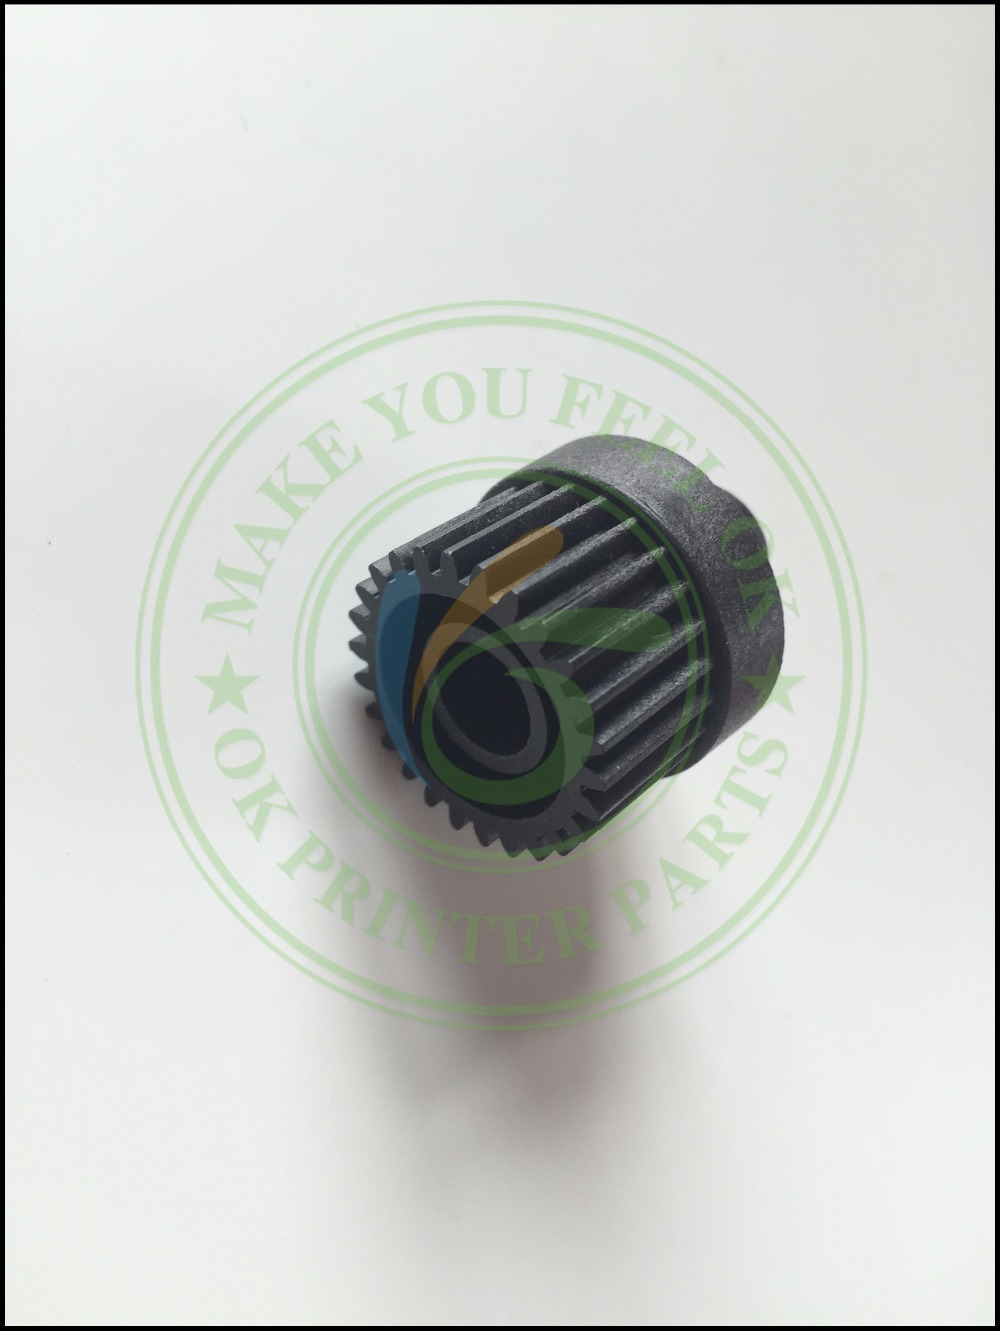 10PCX ORIGINAL JC66-01202A Fuser Inner Drive Gear for Samsung ML1915 ML2525 ML2580 ML2540 ML2545 SCX4200 SCX4300 SCX4600 SCX4623 original fuser drive gear for samsung clx 8380 6200 8540 clp 610 660 770 775 fuser swing gear remove from new machine